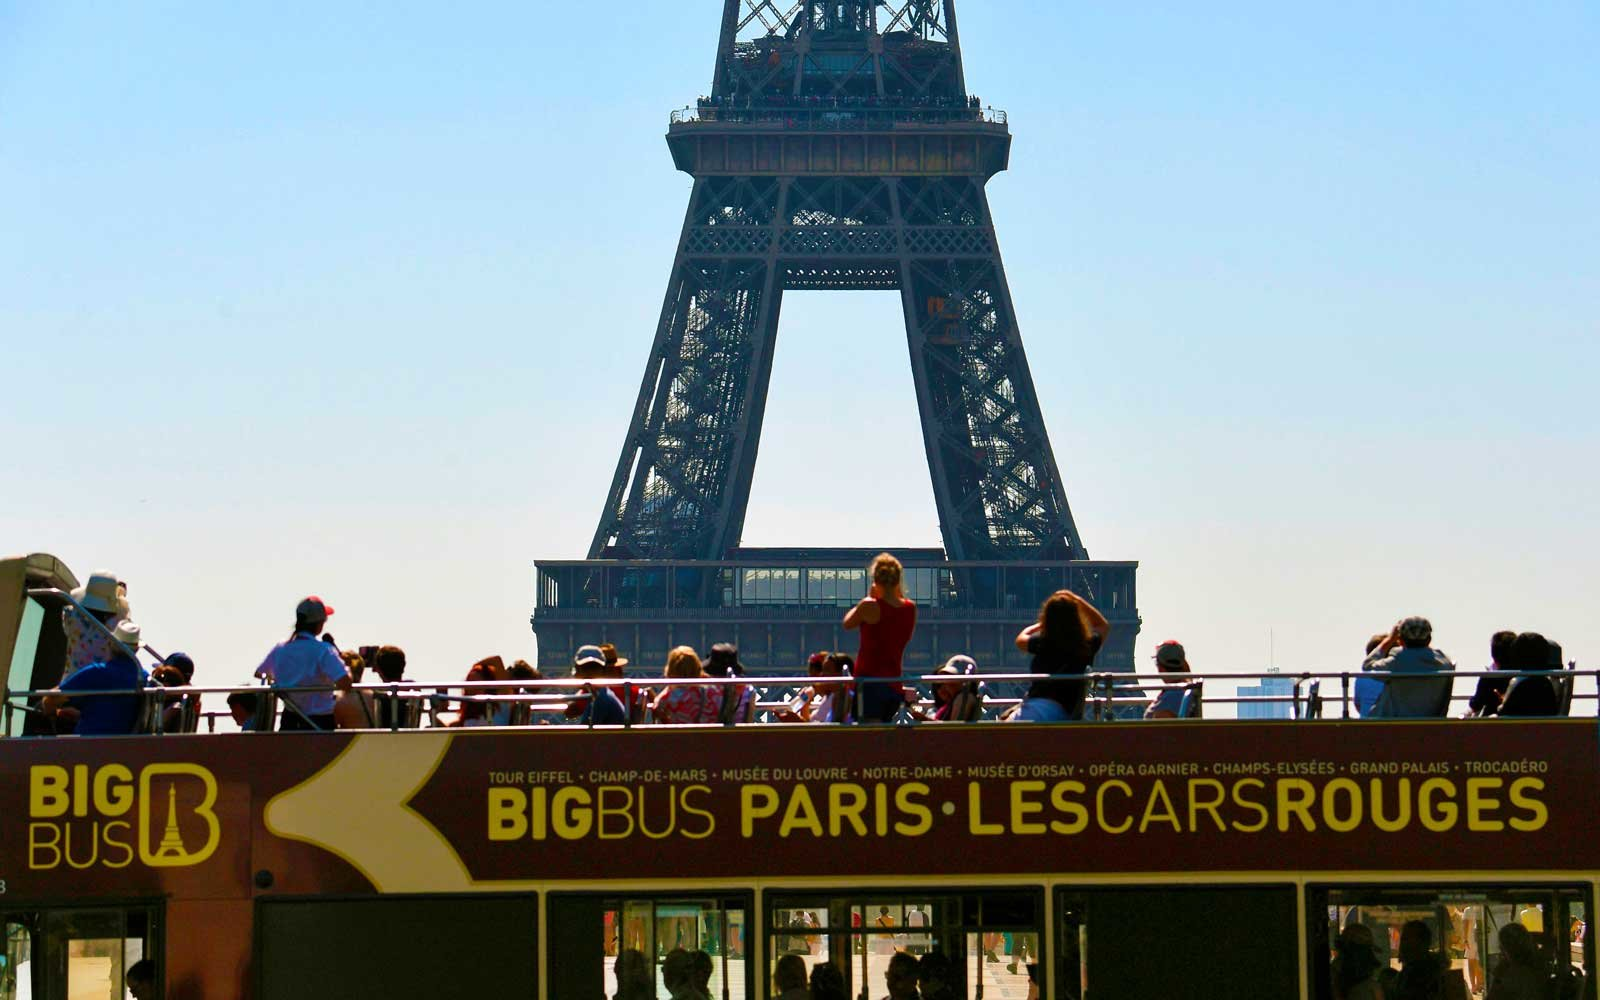 Tourists travel on an opentop bus in front of The Eiffel Tower in Paris